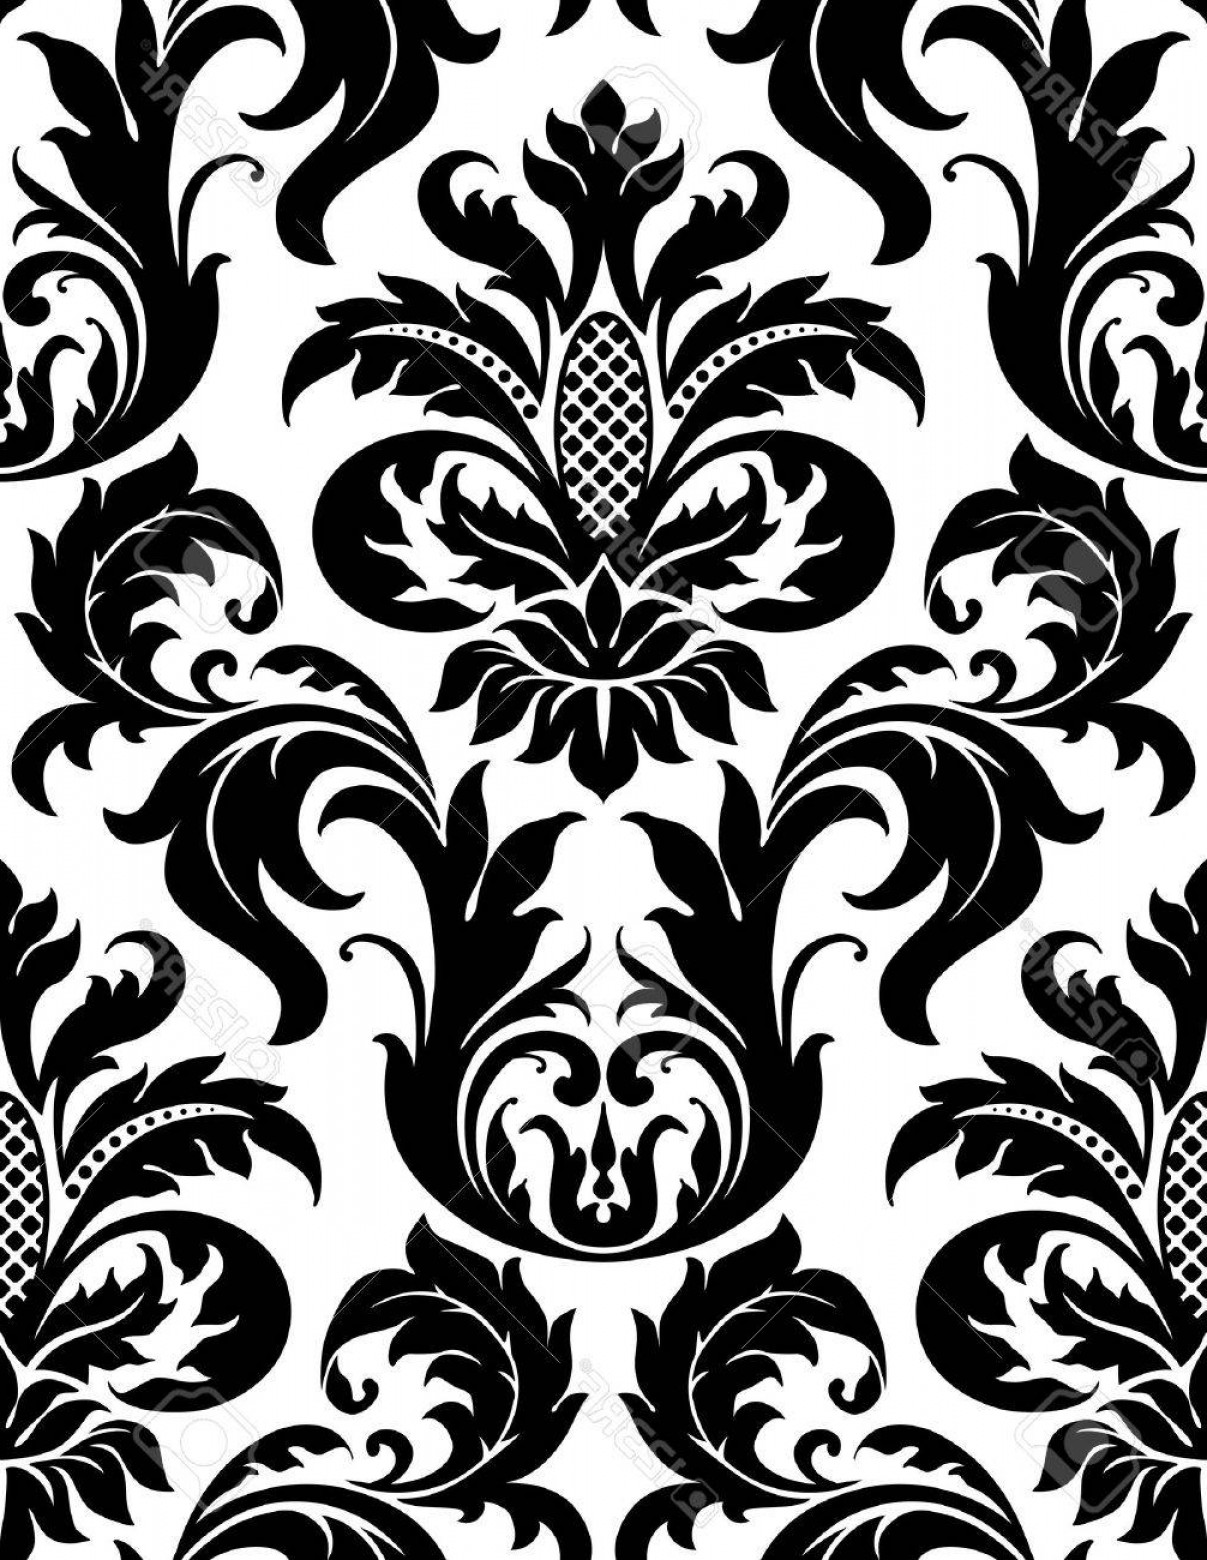 Damask Background Vector Art: Photovector Seamless Floral Damask Pattern For Vintage Abstract Background